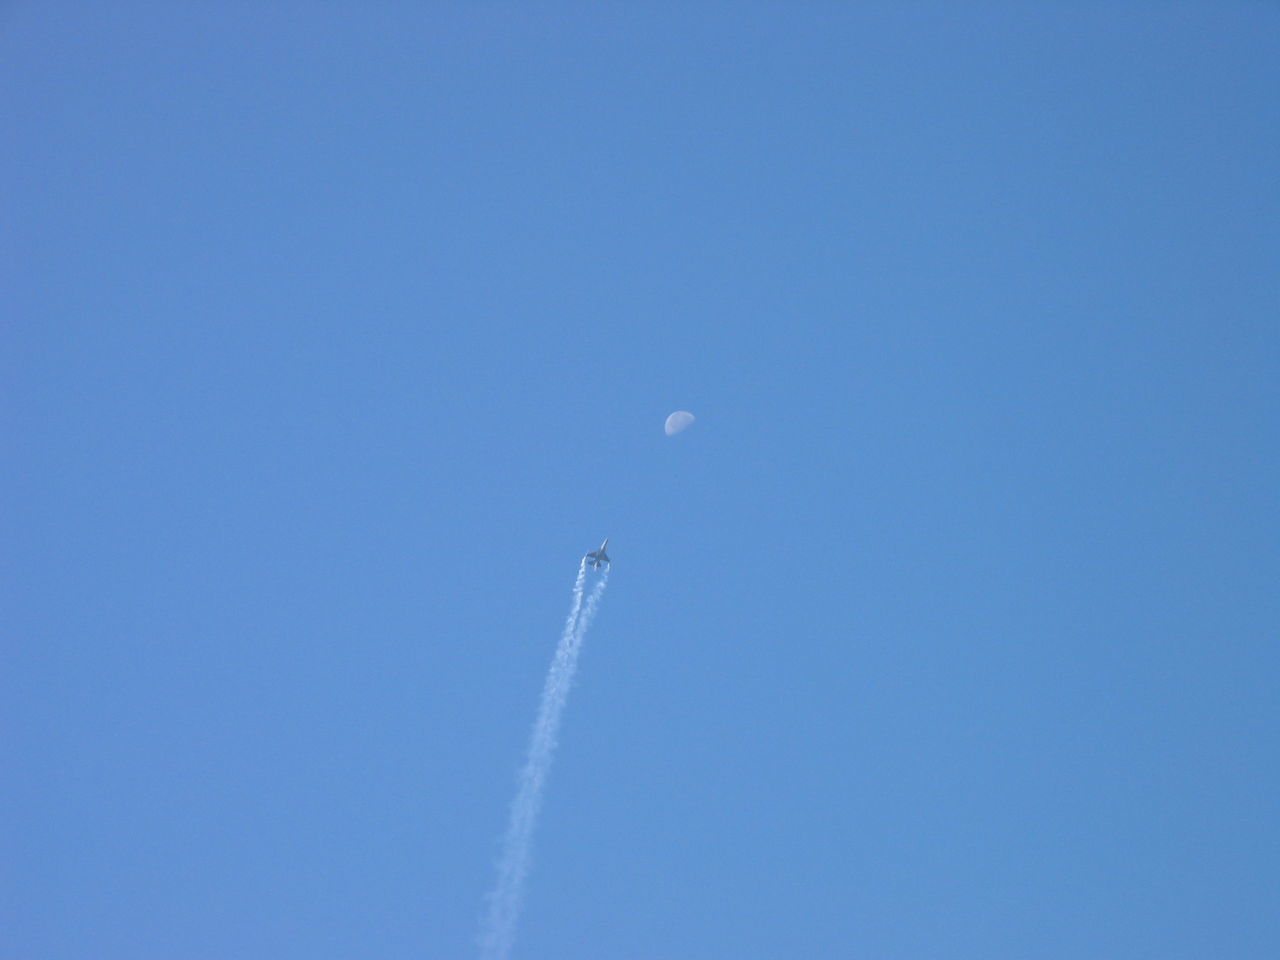 Aerobatics Air Vehicle Airplane Airshow Blue Chemtrail Clear Sky Falcon Fighter Fly Me To The Moon Flying Moon No People Sky First Eyeem Photo